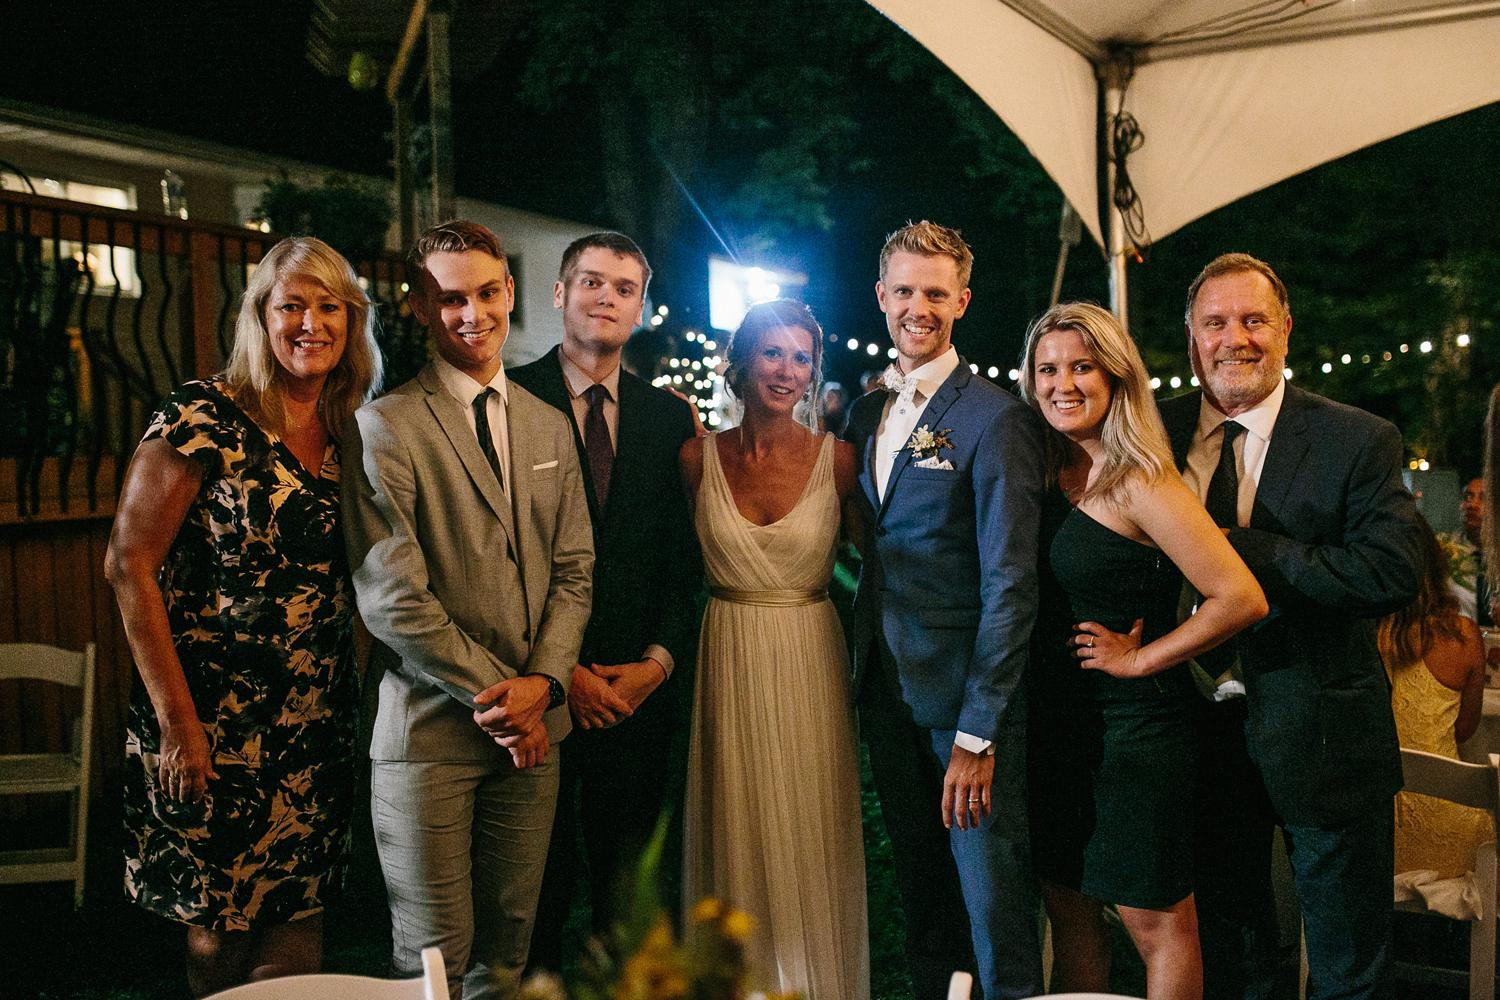 Katie___Sean_Wedding_334.jpg